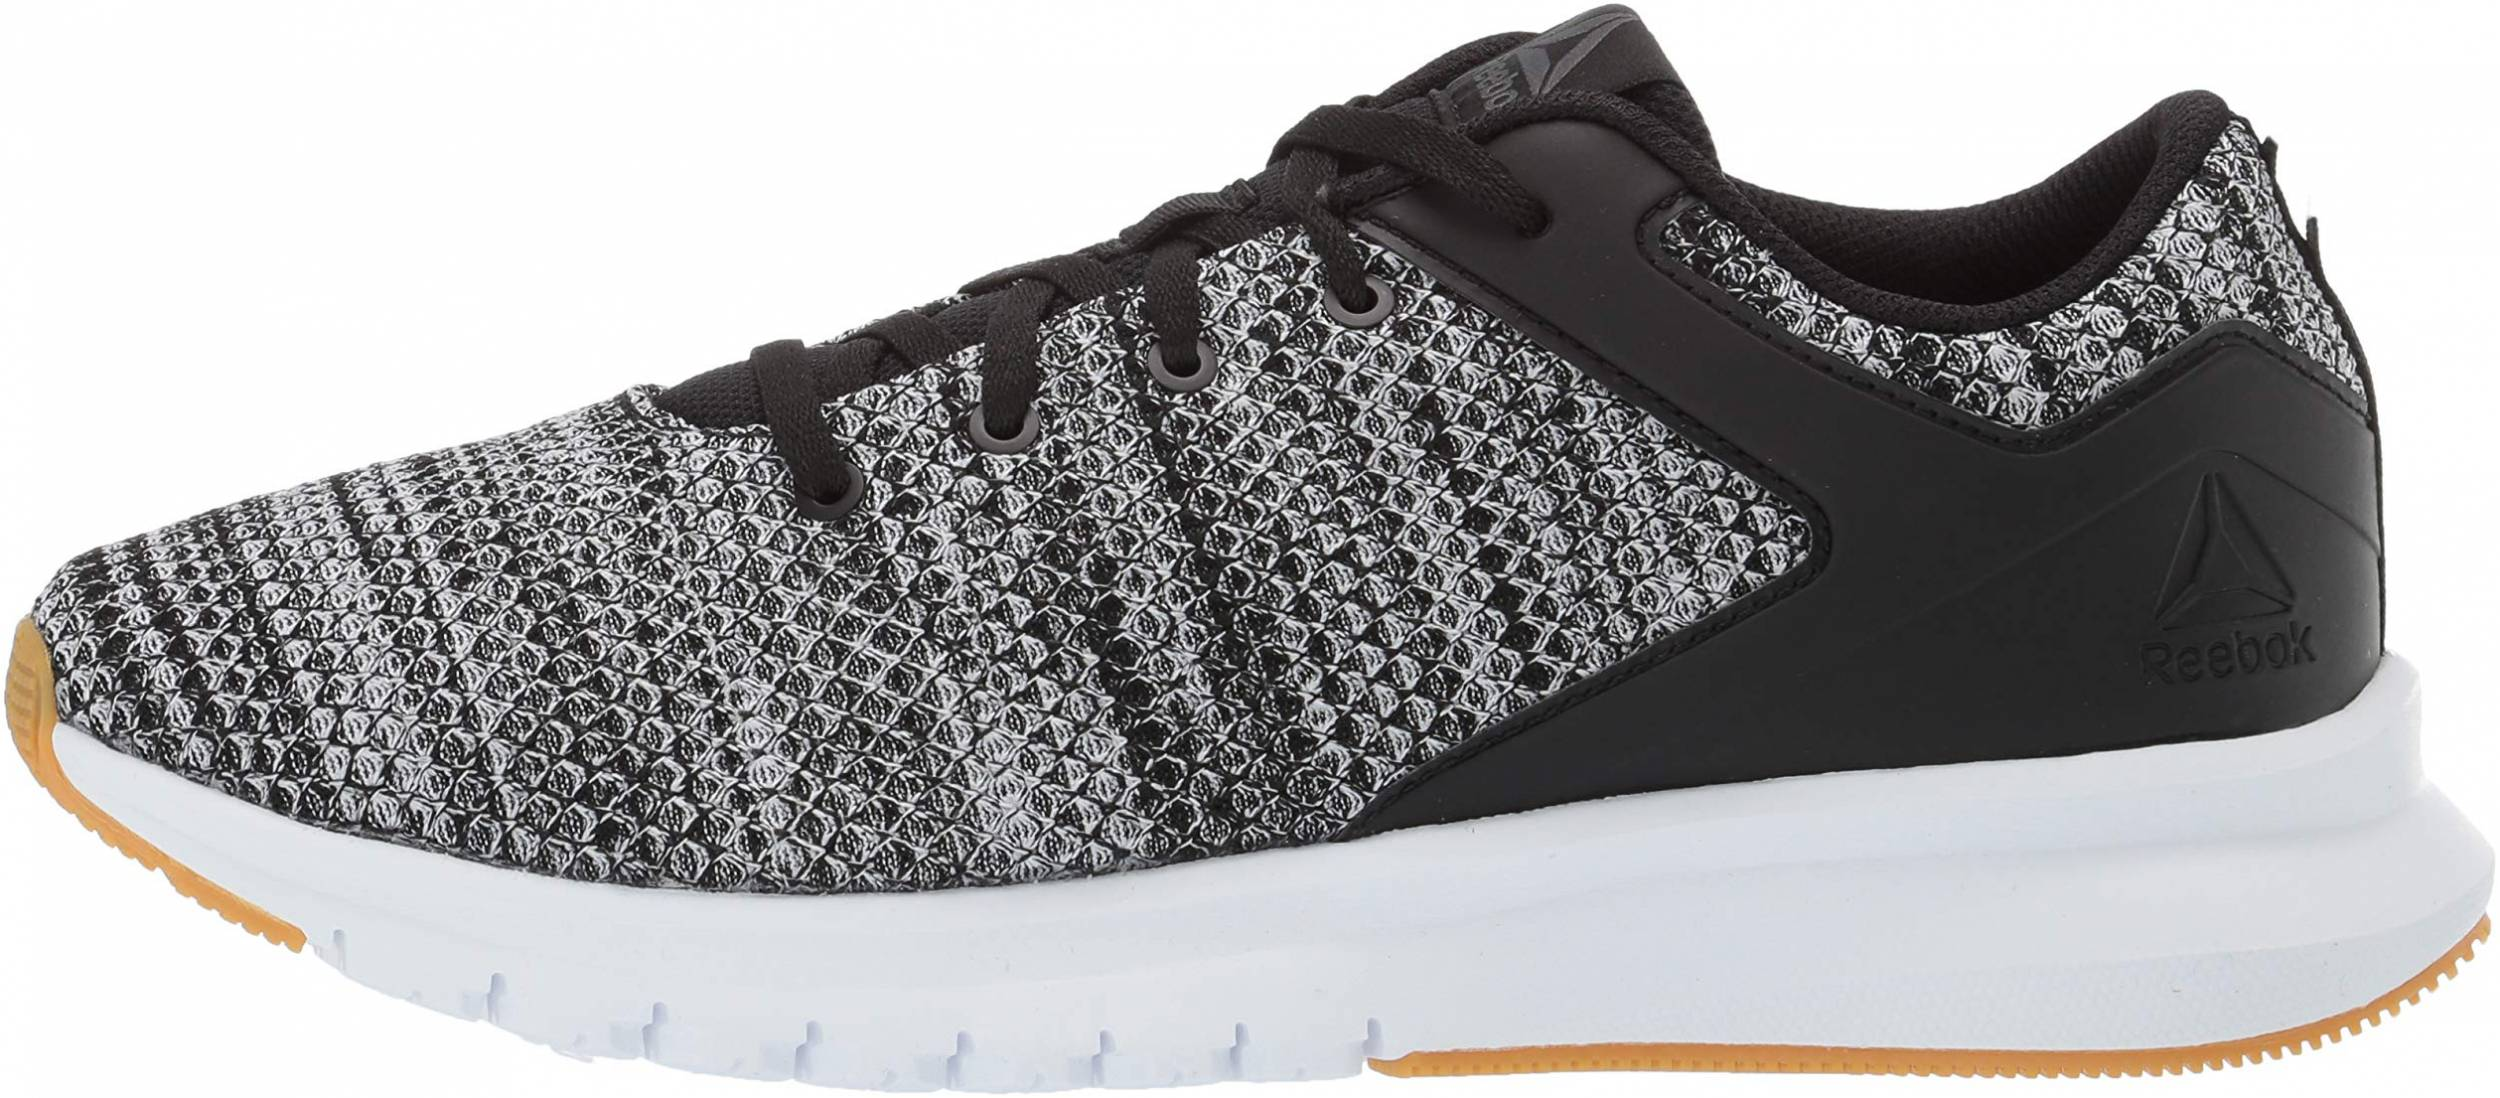 Only $34 + Review of Reebok Print Lux